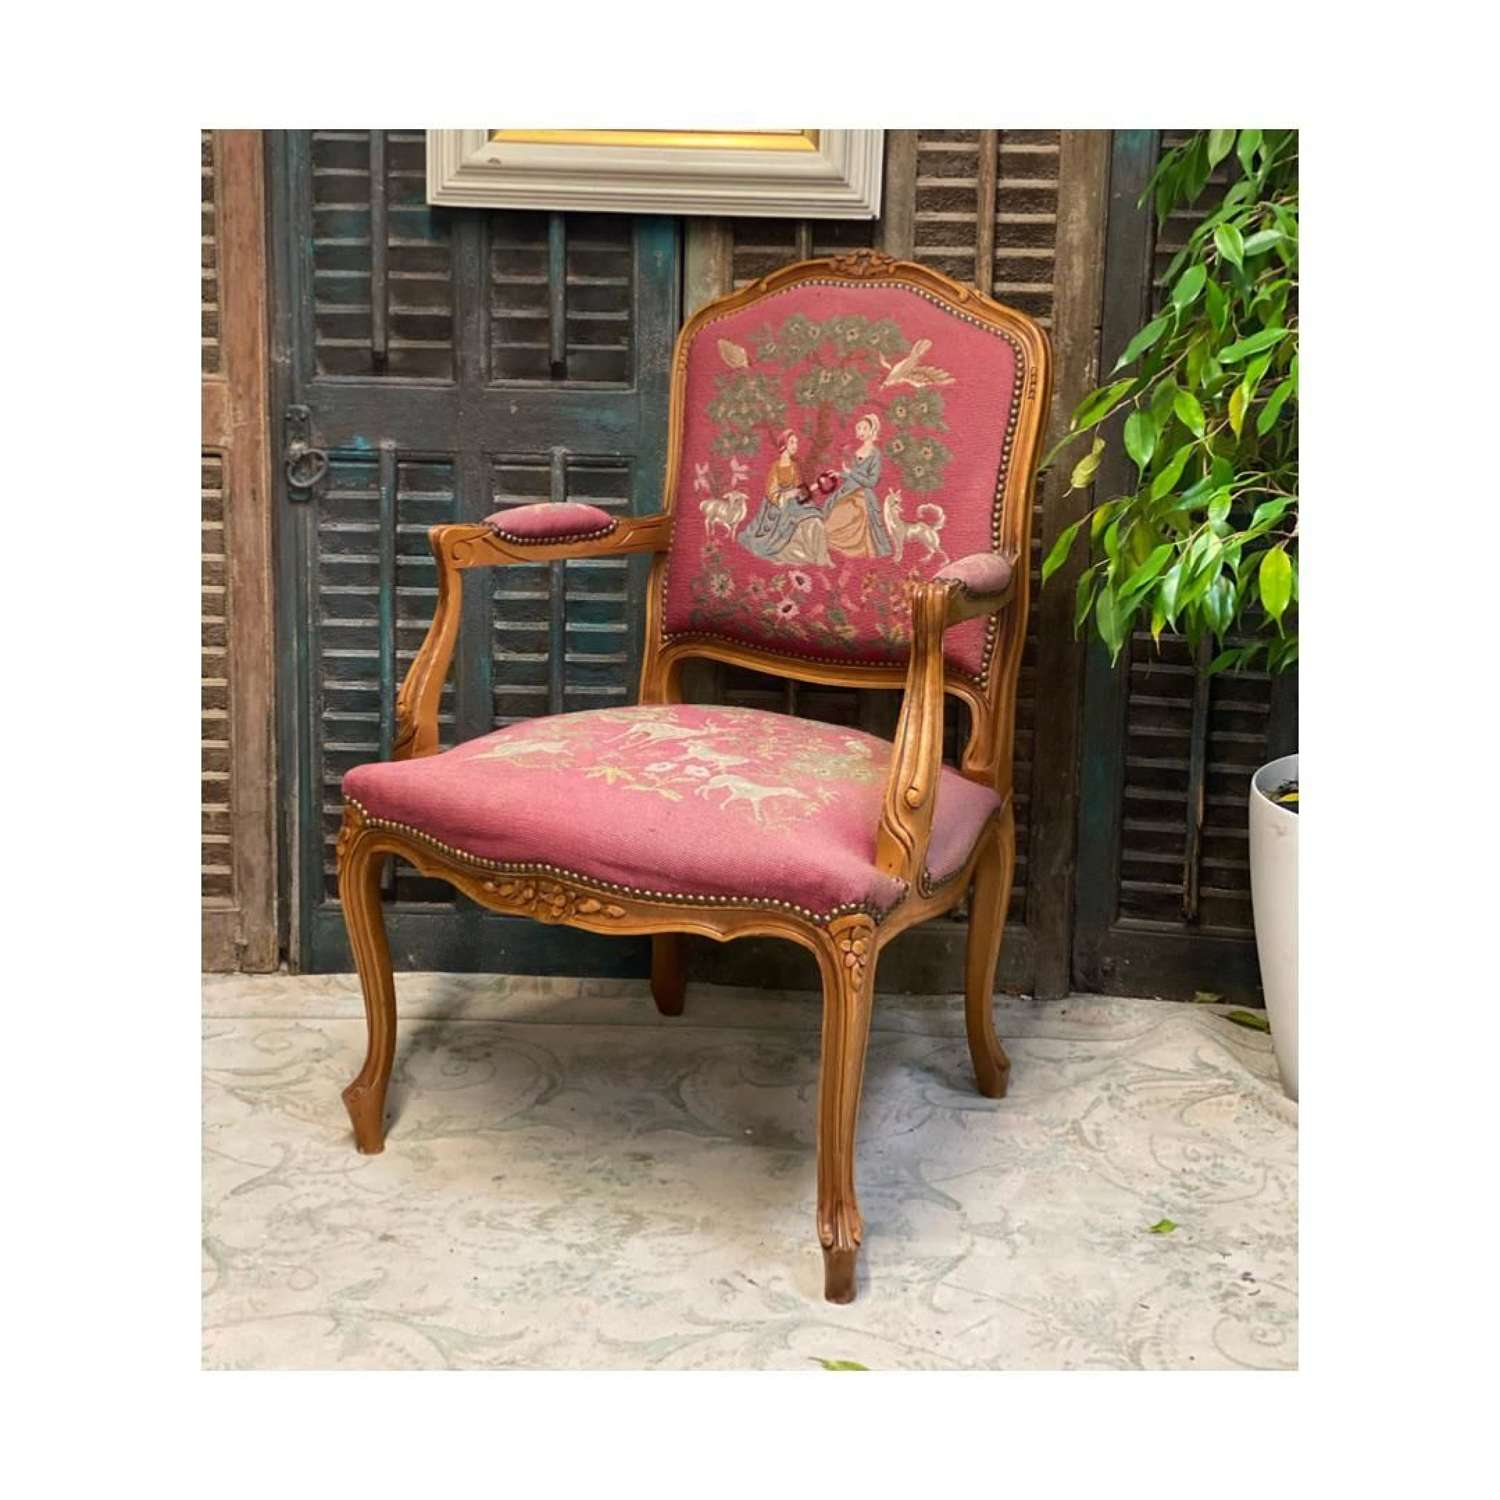 A gorgeous rose pink colour with 2 scenes on the back rest